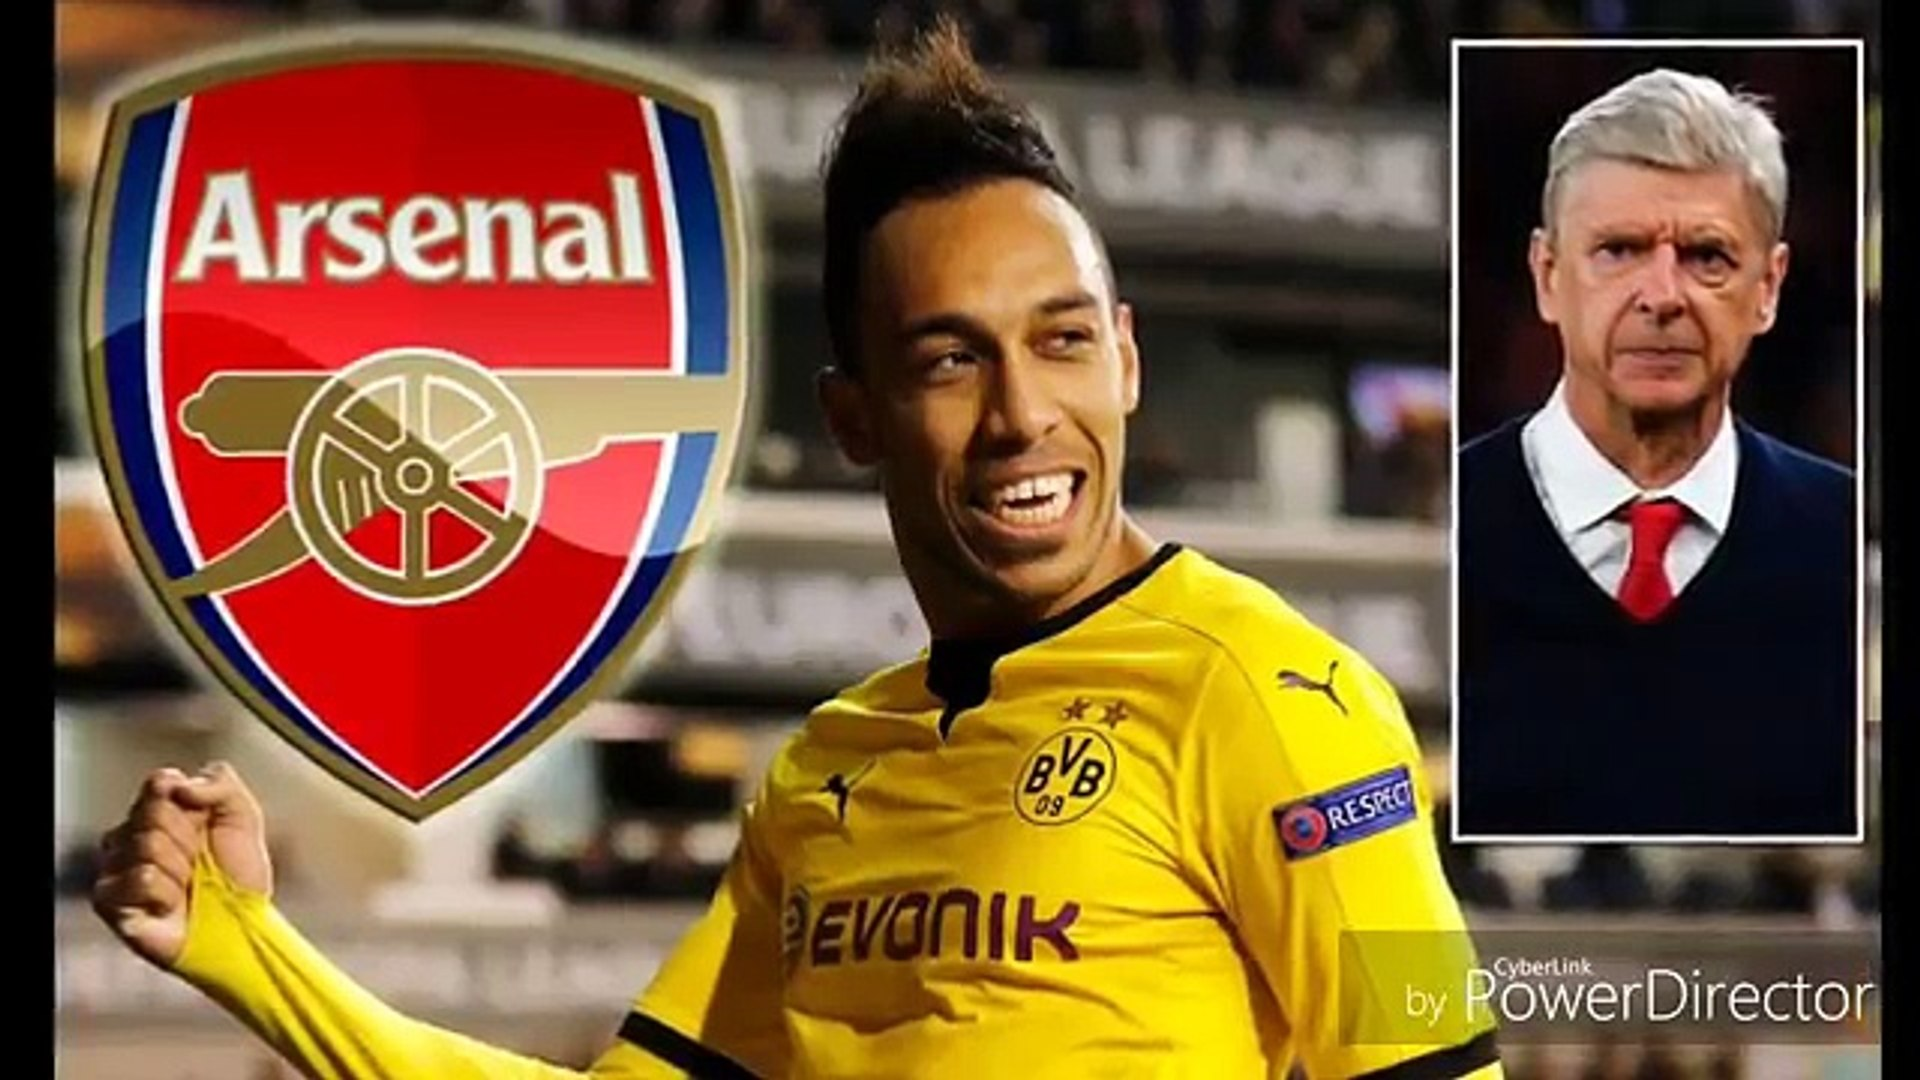 Arsenal and Pierre-Emerick Aubameyang have agreed on a 3-and-a-half year contract with a €10m-a-year